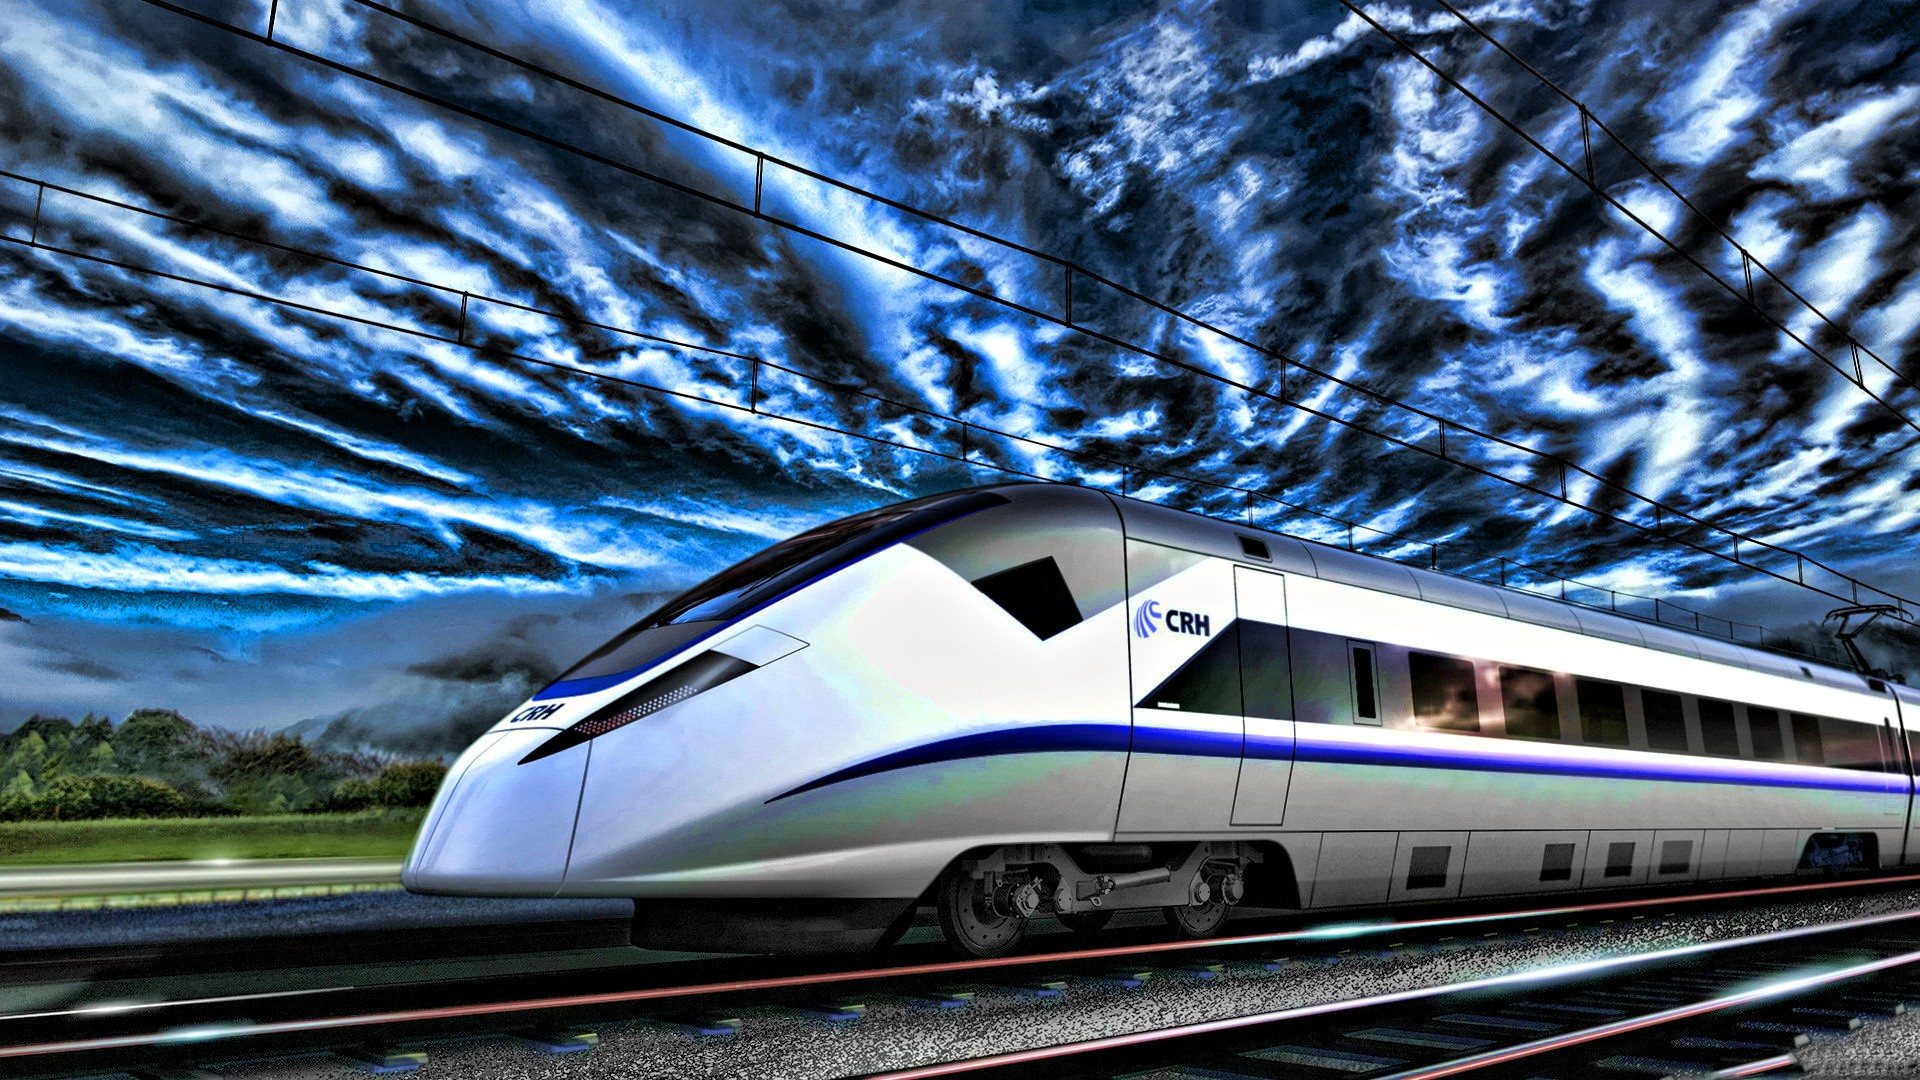 Train Wallpapers Best Wallpapers